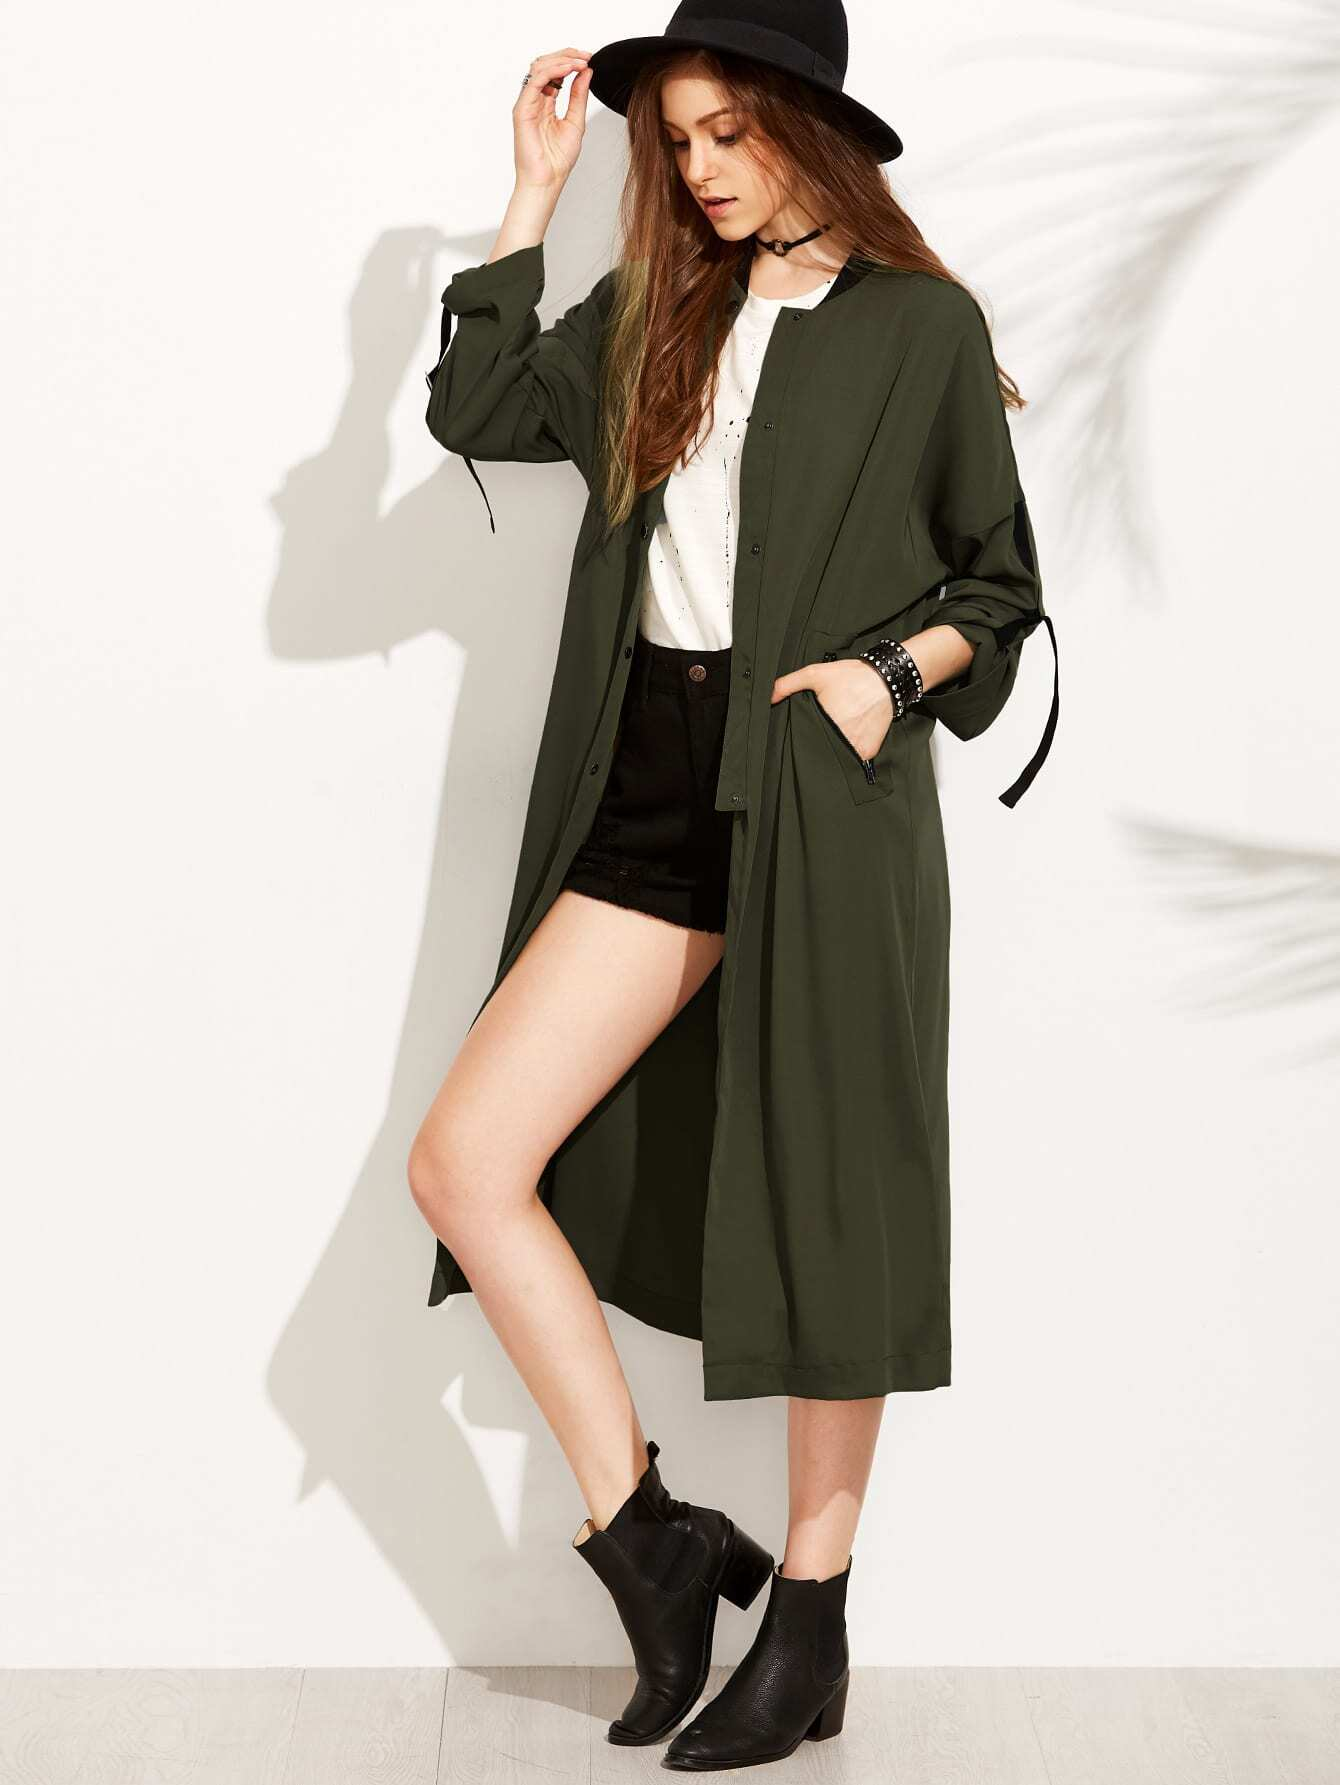 Army Green Button Pocket Rolled Up Sleeve OuterwearArmy Green Button Pocket Rolled Up Sleeve Outerwear<br><br>color: Green<br>size: M,S,XS